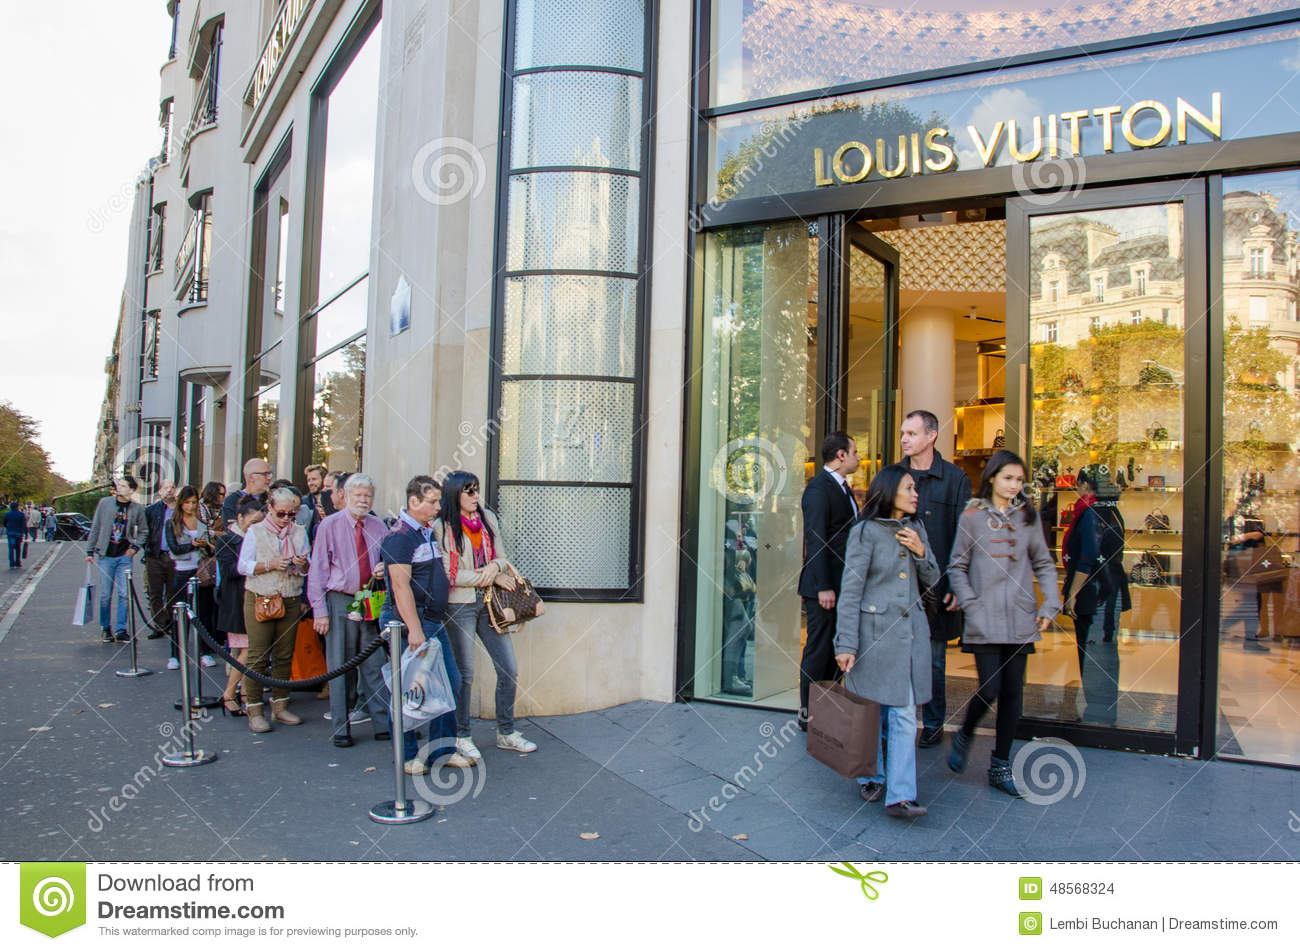 PARIS, FRANCE, OCTOBER 11, 2014 Tourists line up outside the modern Louis  Vuitton flagship store on the Champs-Elysees in Paris. 26e5d10489